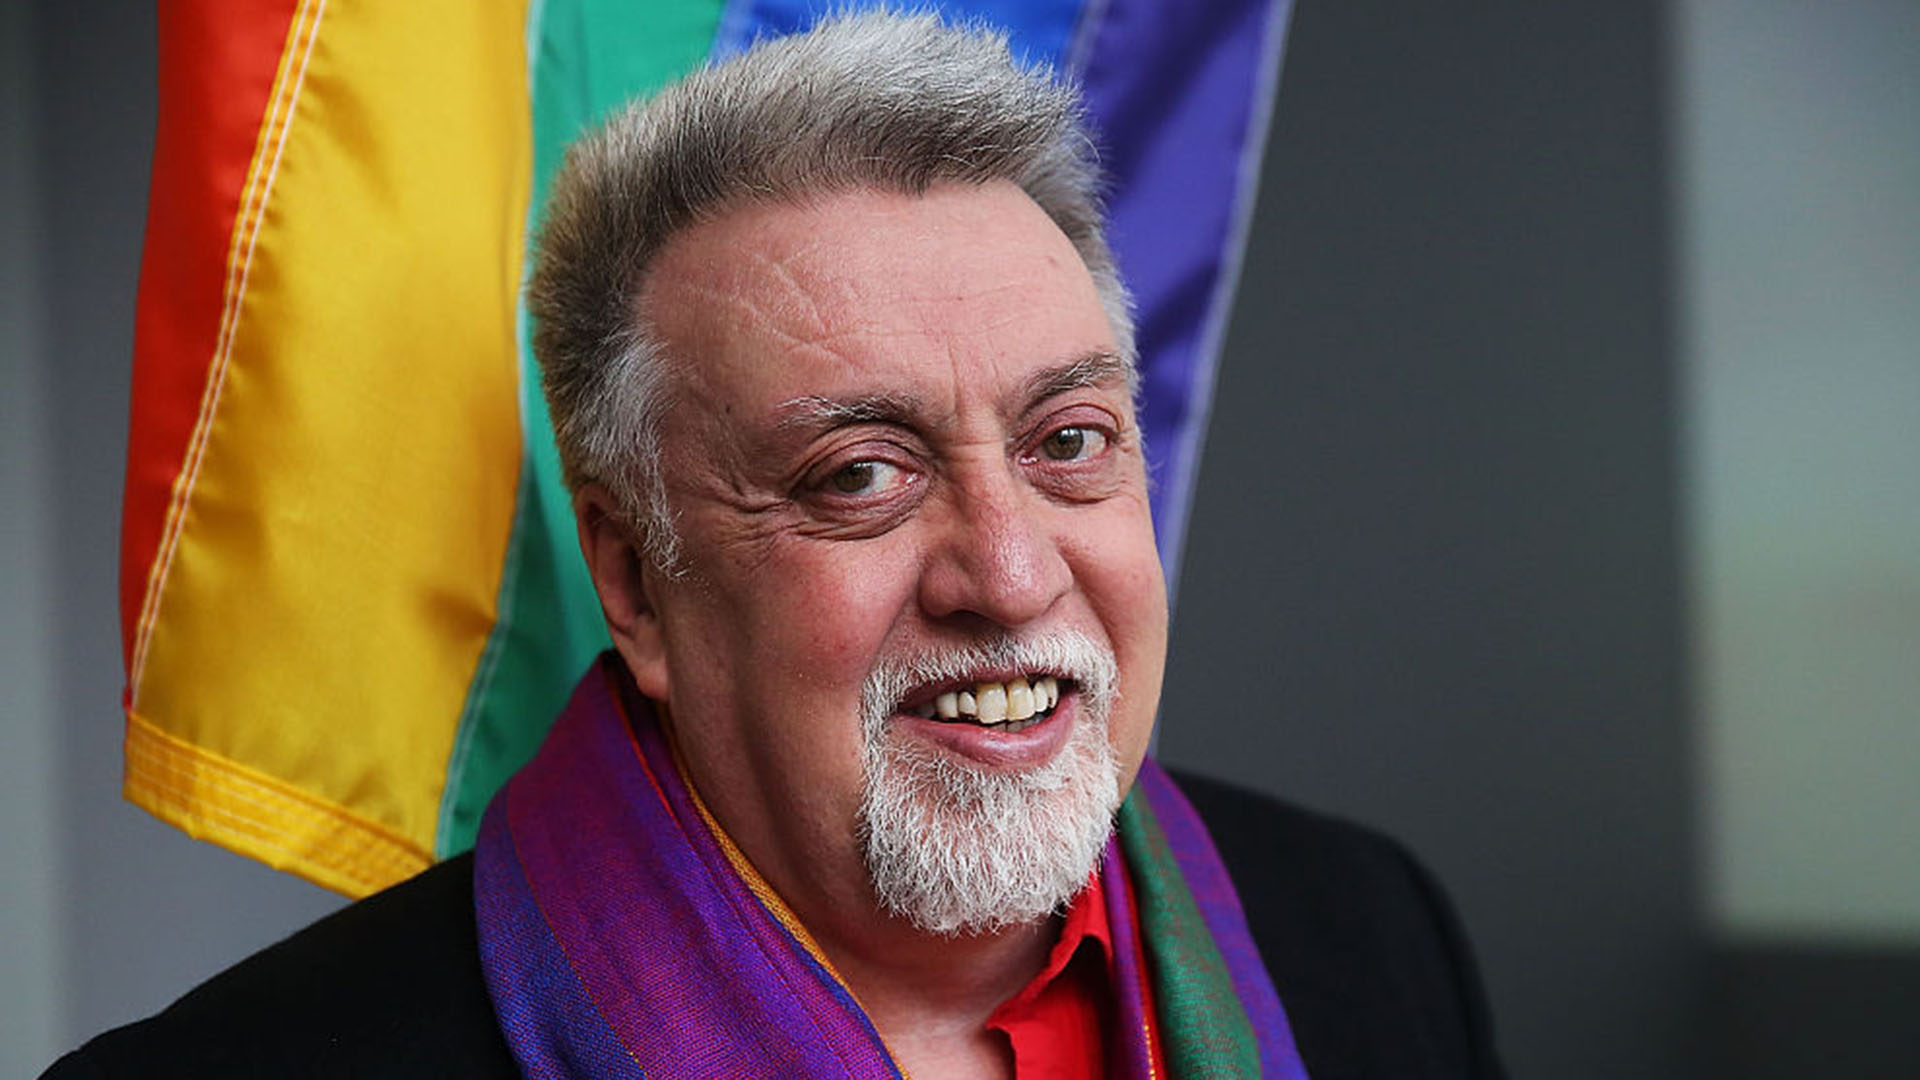 FILE - Gilbert Baker, creator of the iconic rainbow flag used to represent the LGBTQ community and civil rights, died on March 31, 2017, at the age of 65.